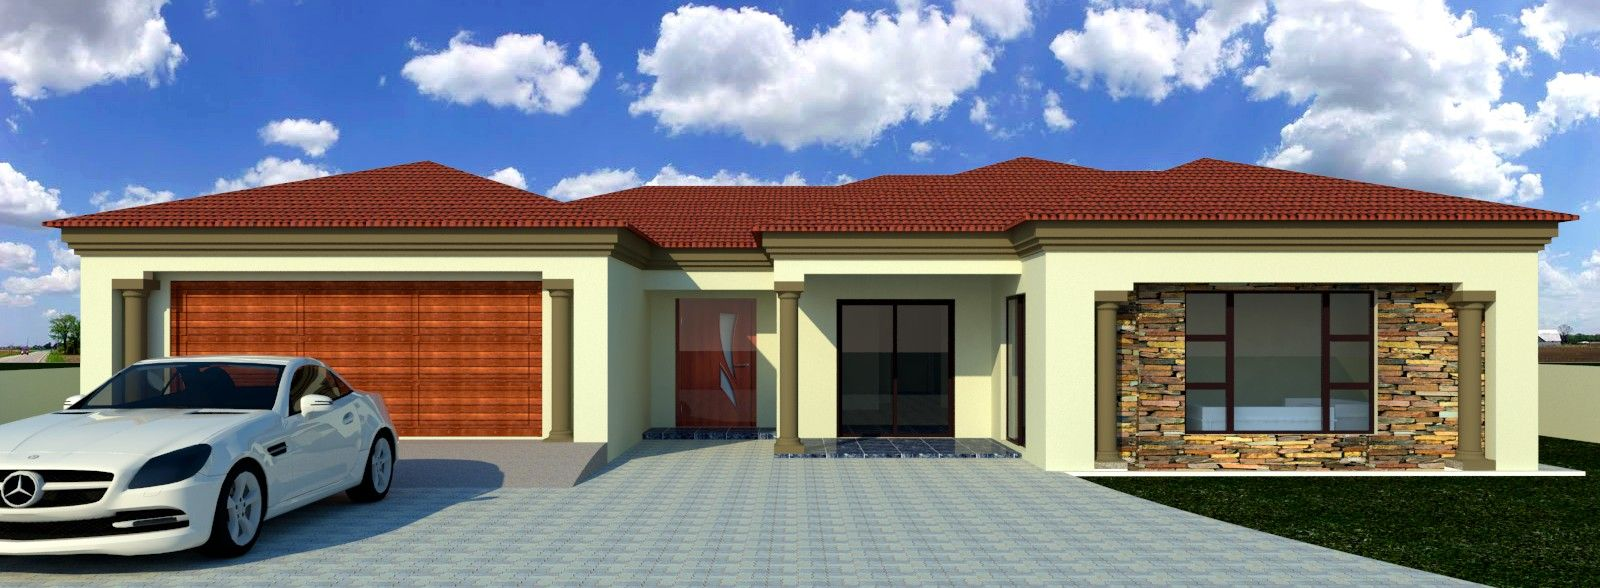 Modern african house plans lovely bedroom african house design agreeable home in the modern also